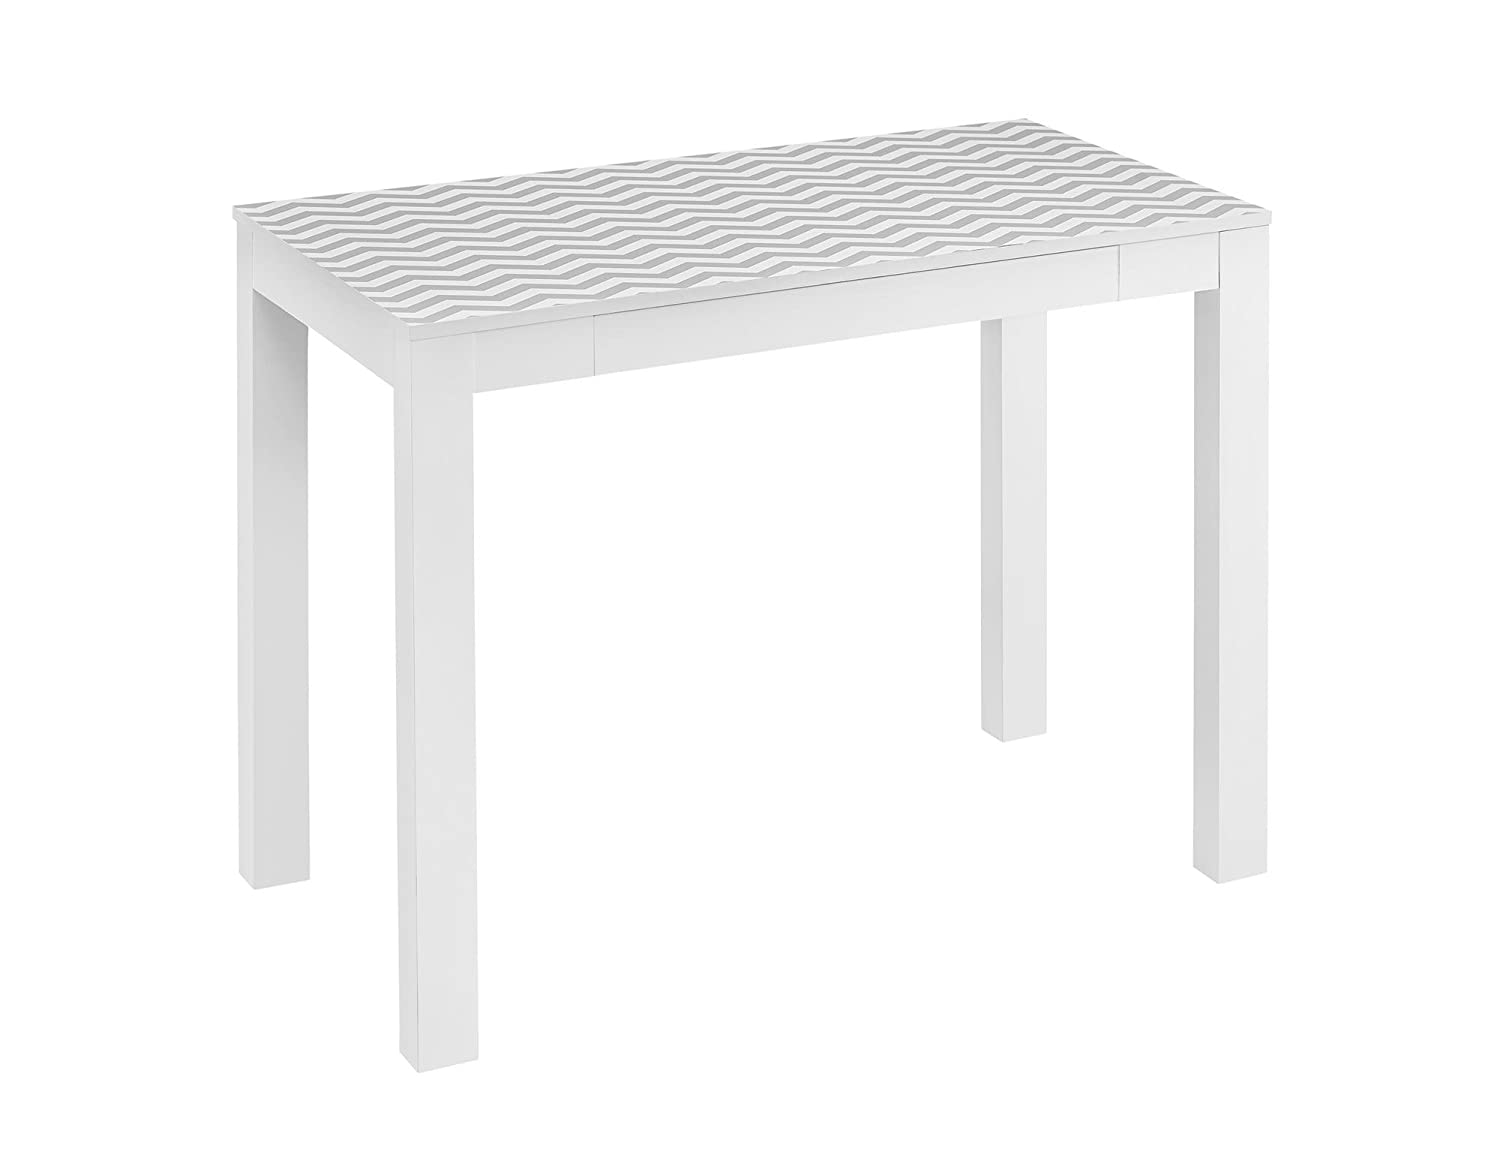 Ameriwood Home Parsons Desk with Drawer, White/Gray Chevron